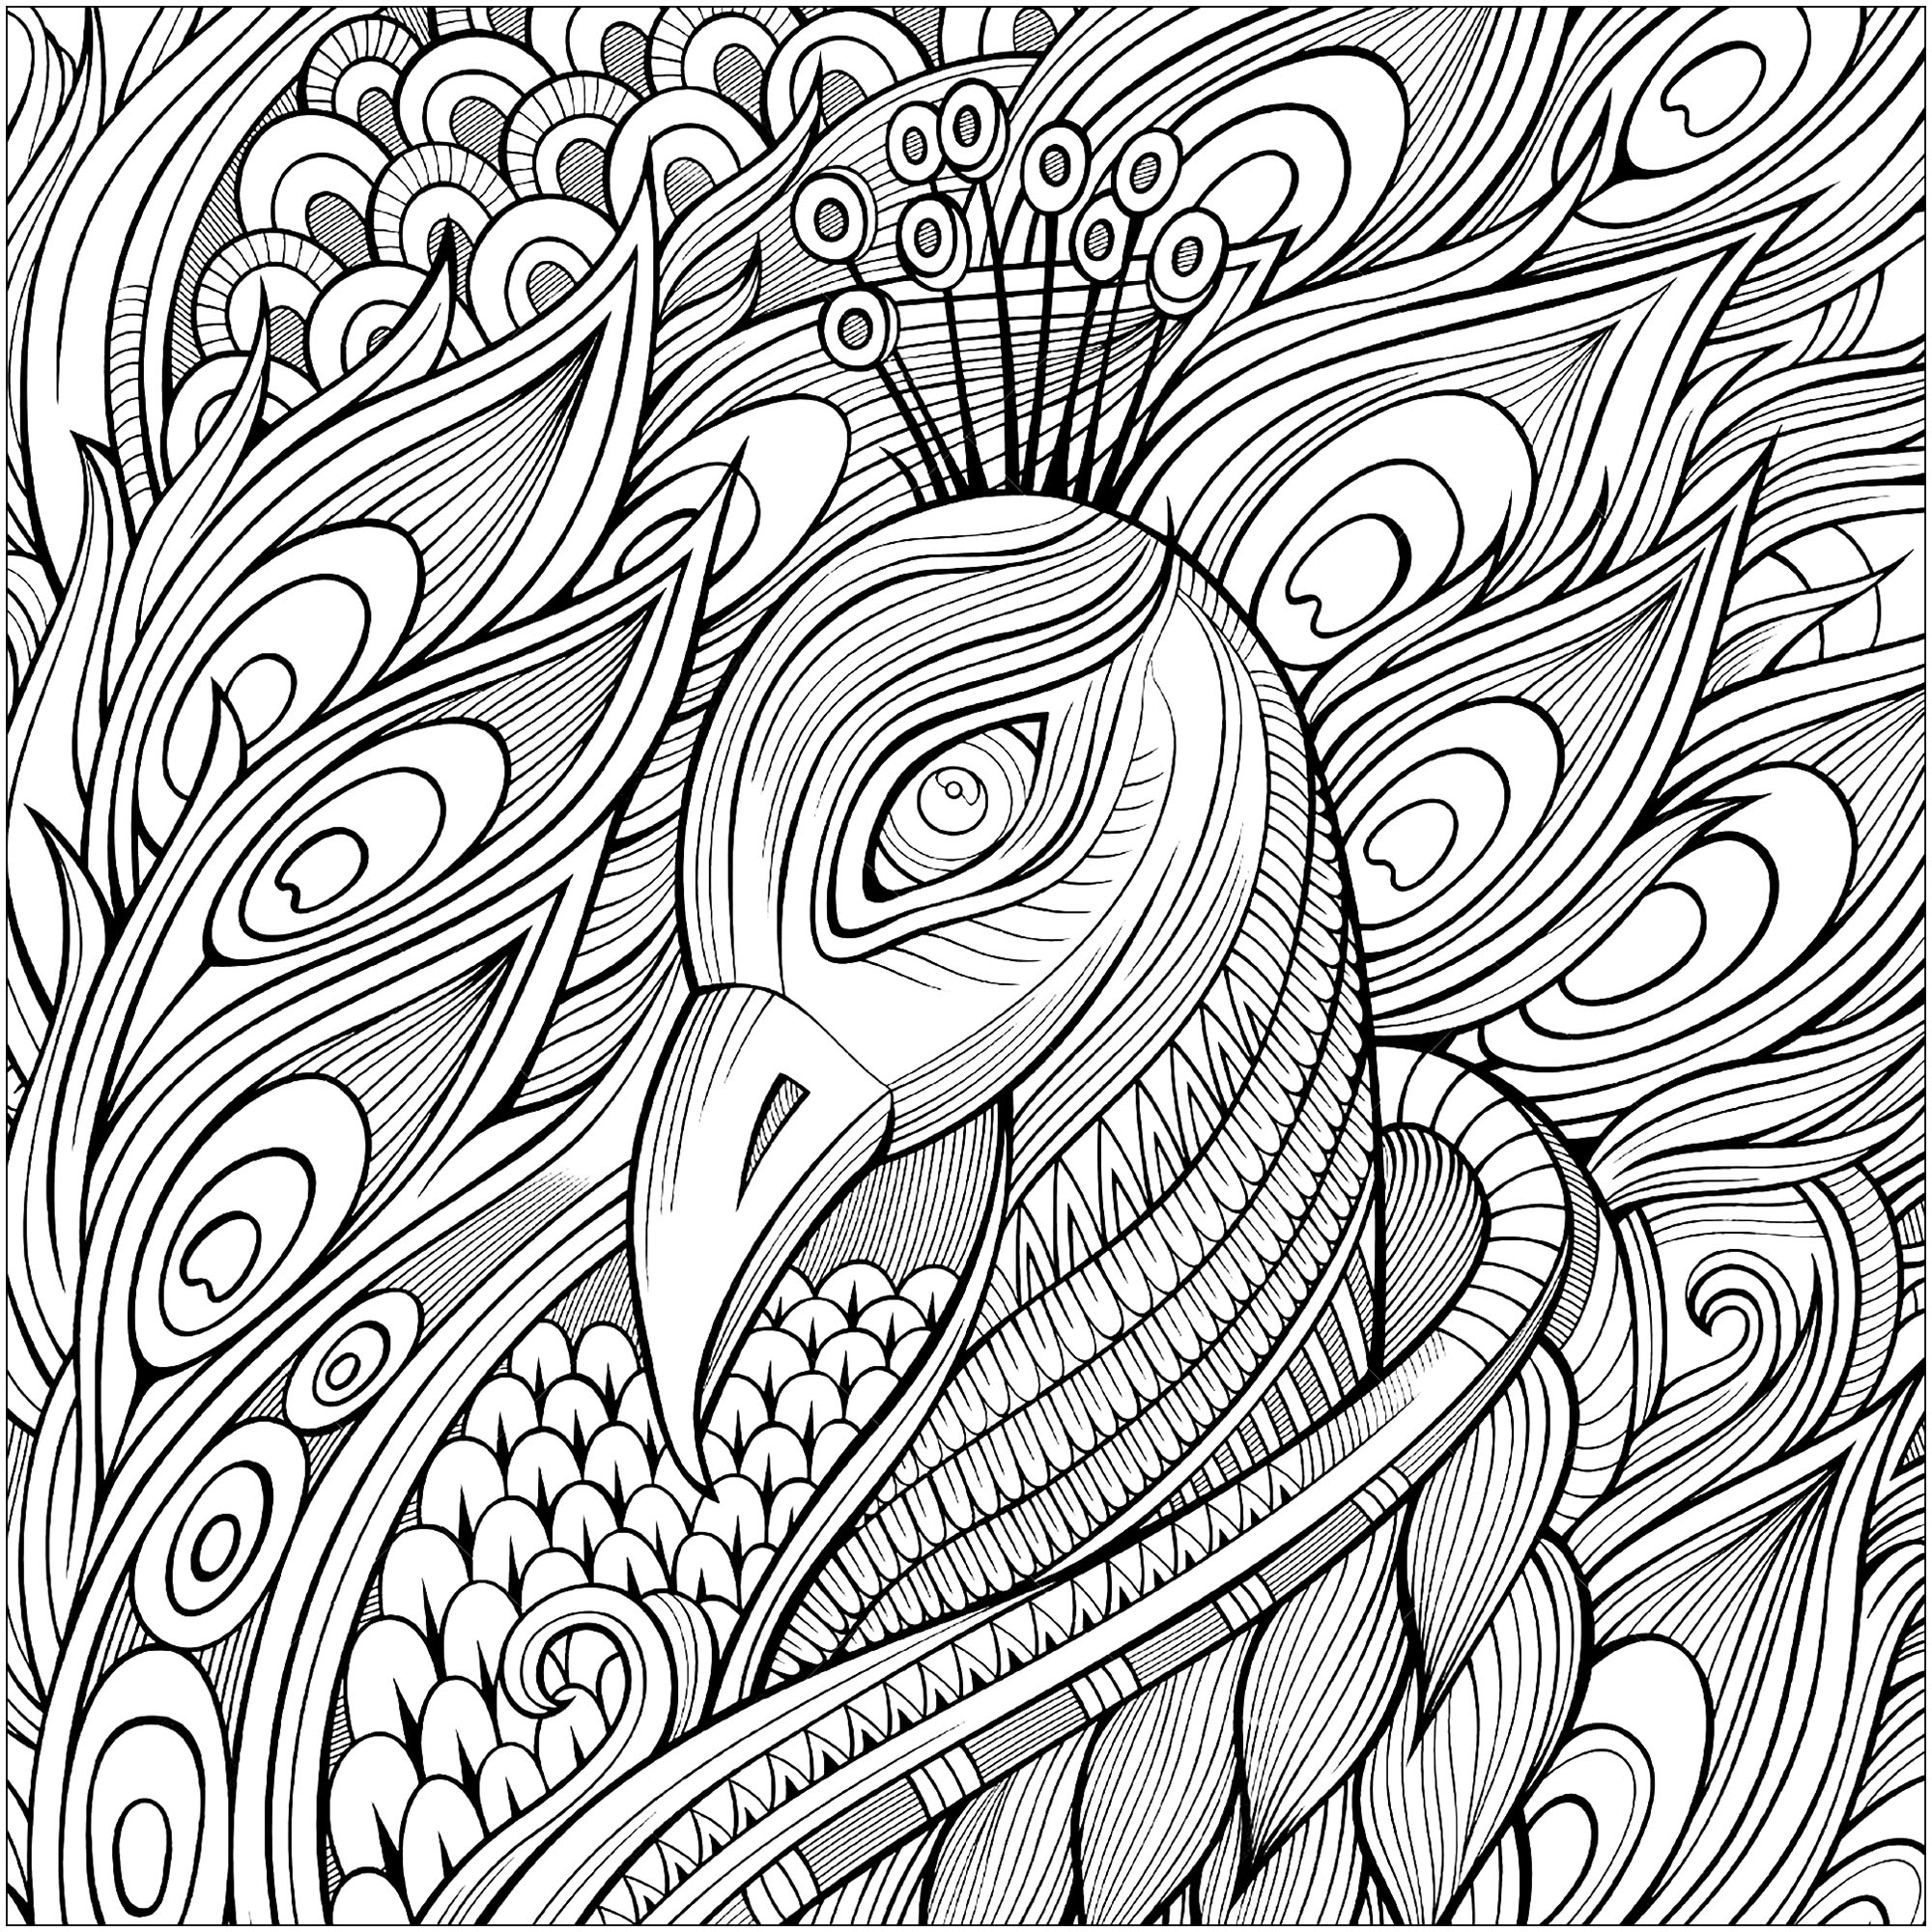 picture of peacock for colouring elegant peacock and its blue feathers peacocks adult picture colouring for peacock of